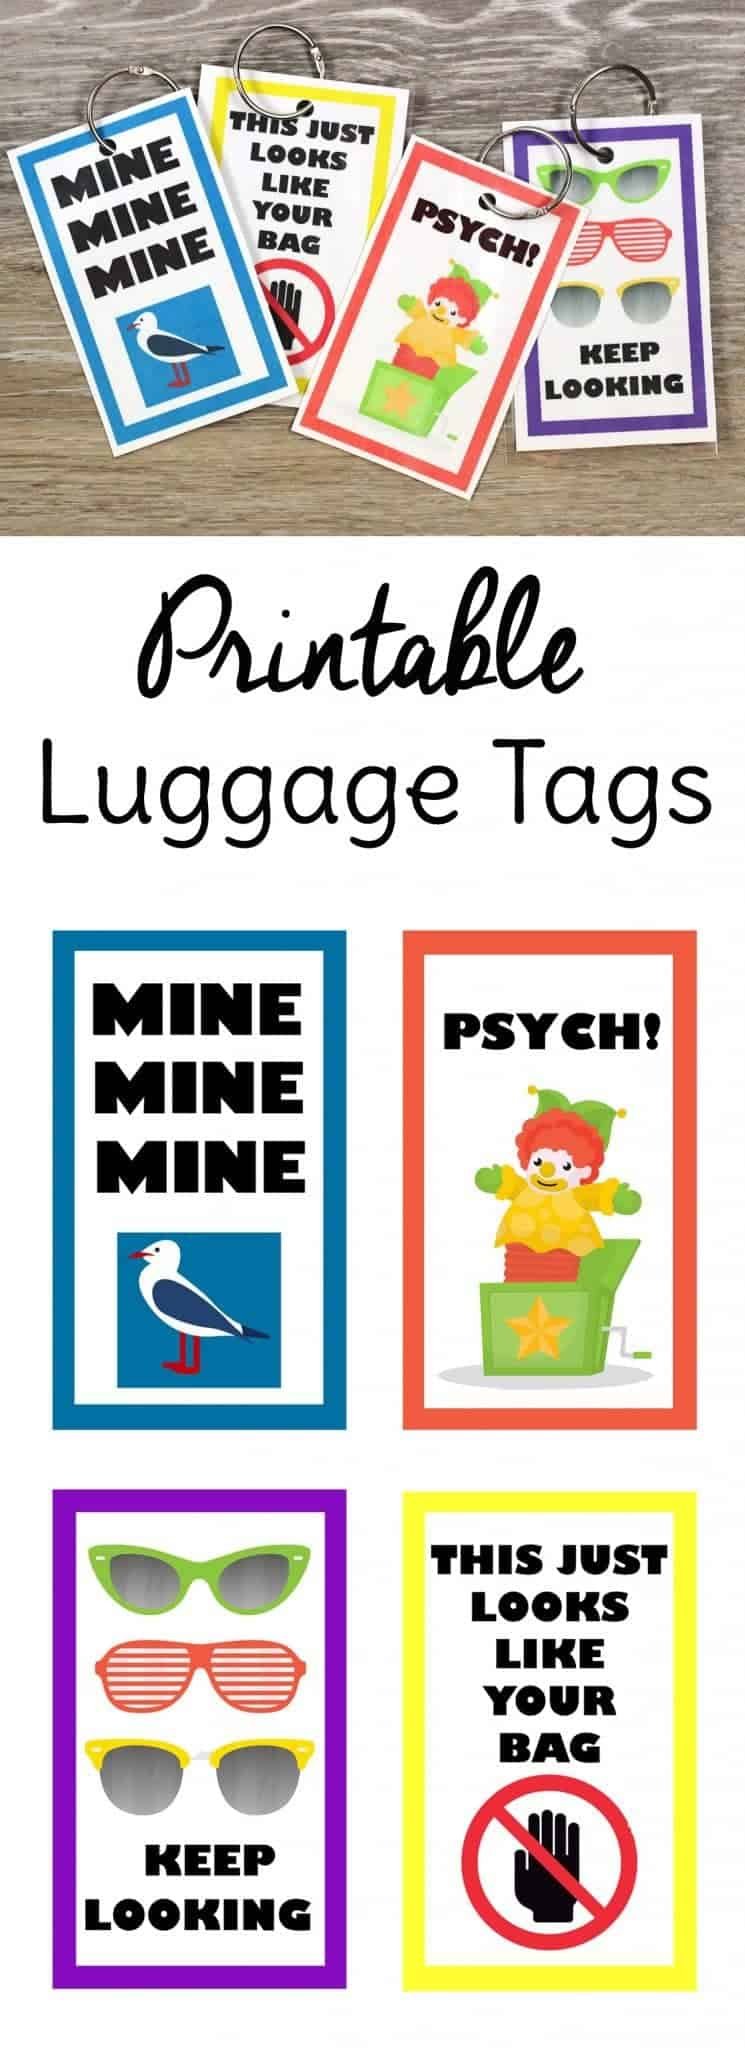 picture about Free Printable Luggage Tags named Amusing Cost-free Printable Baggage Tags Adorable T Can make A few